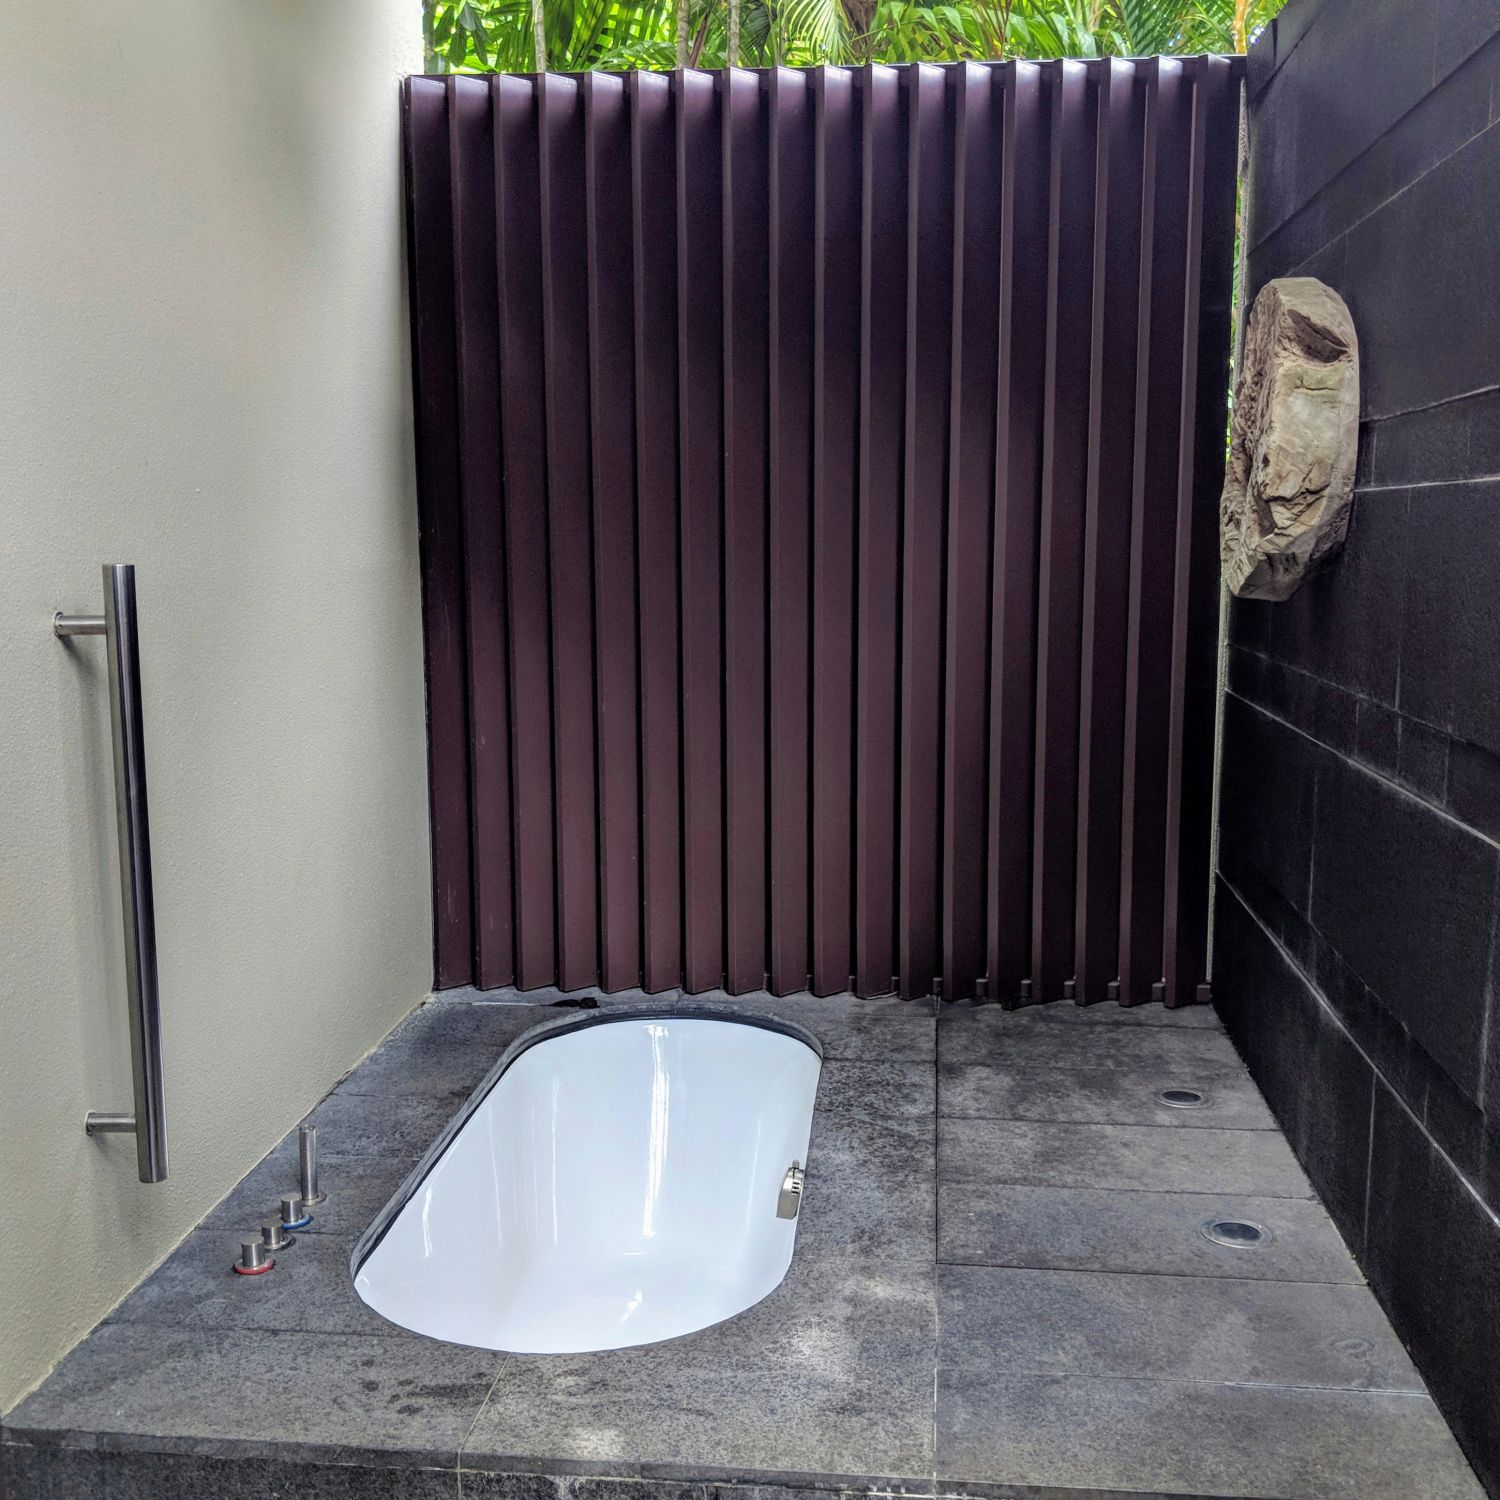 capella singapore One Bedroom Garden Villa bathroom outdoor bathtub